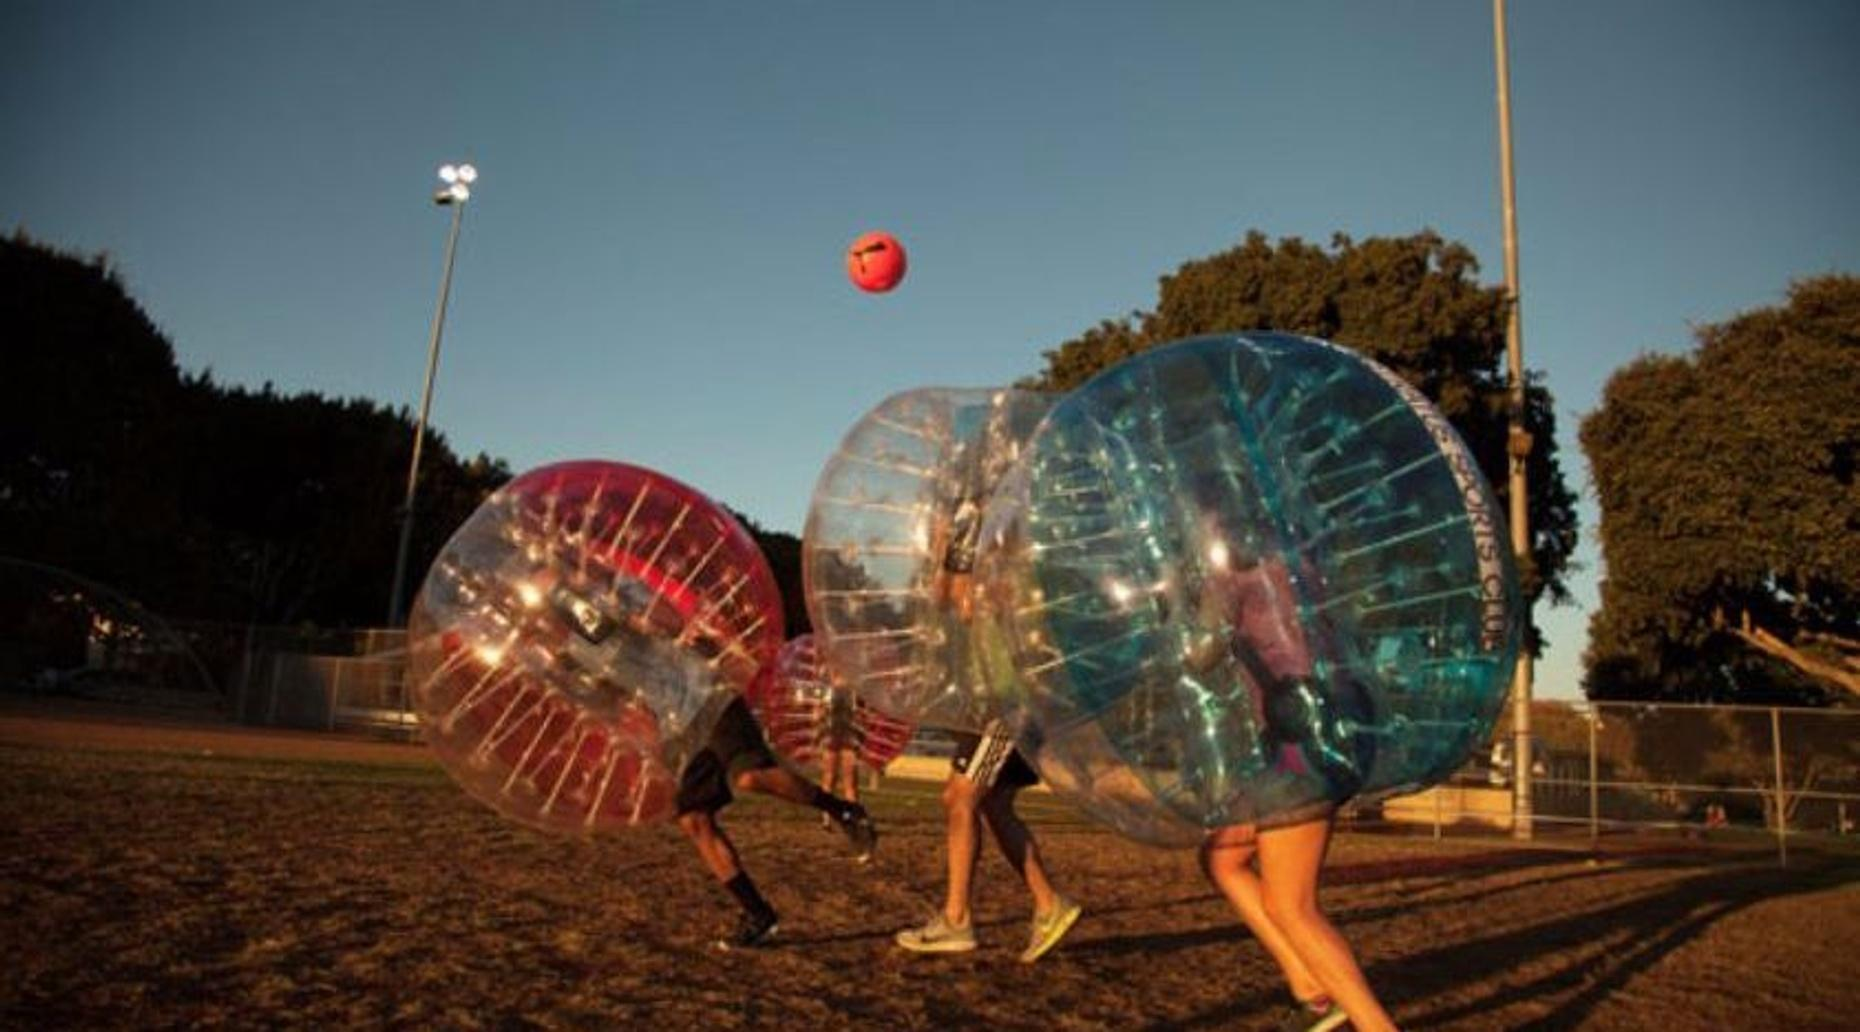 Whirlwind Bubble Soccer Package (12 Bubbles)